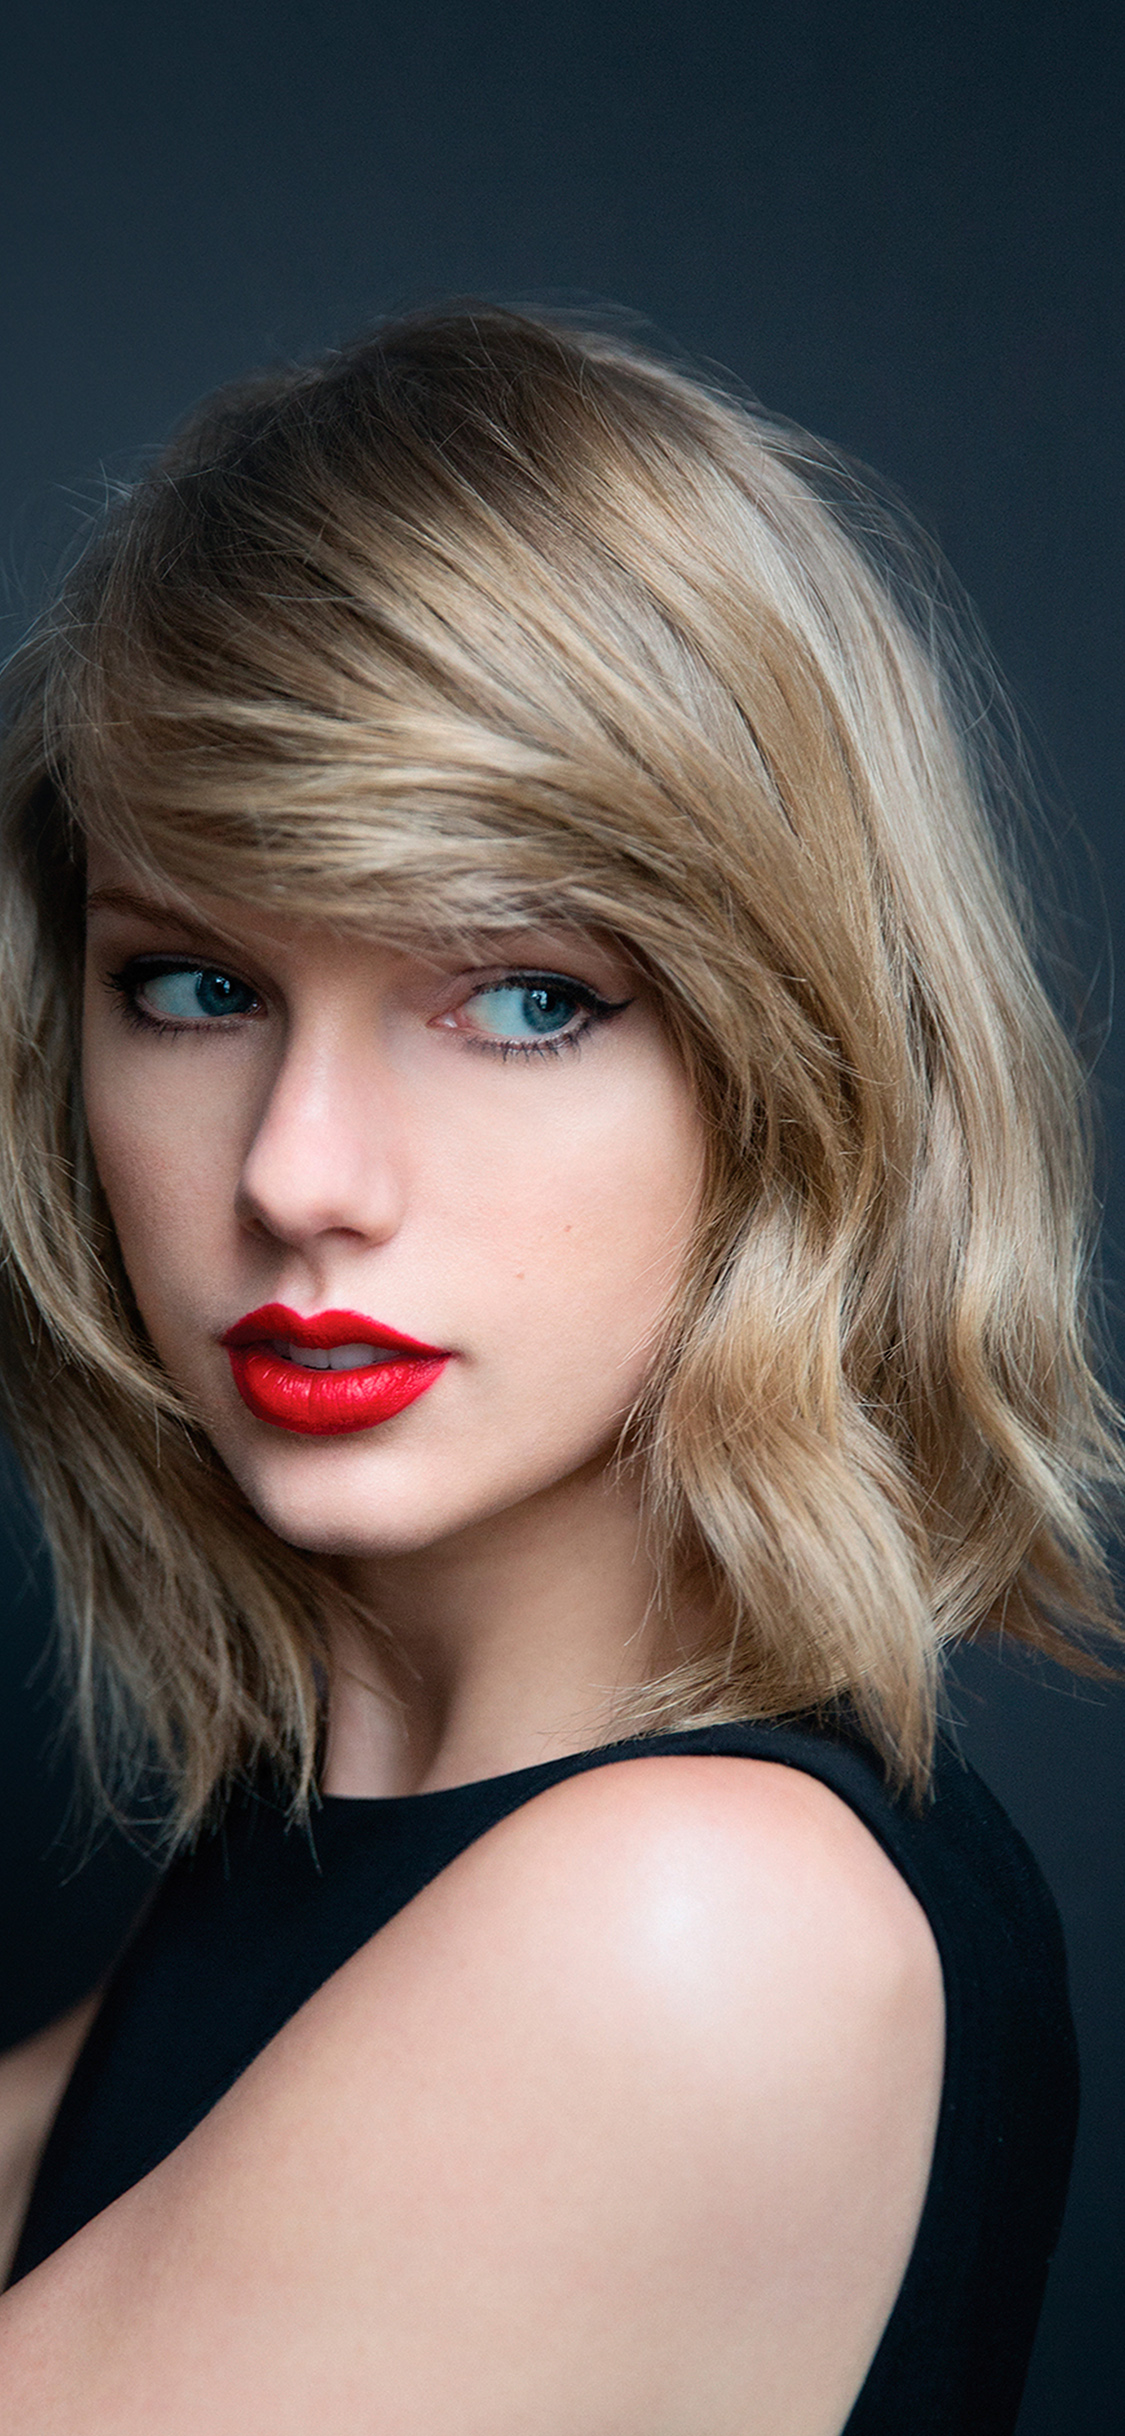 Iphonepapers iphone 8 wallpaper hj10 taylor swift artist iphone x voltagebd Images